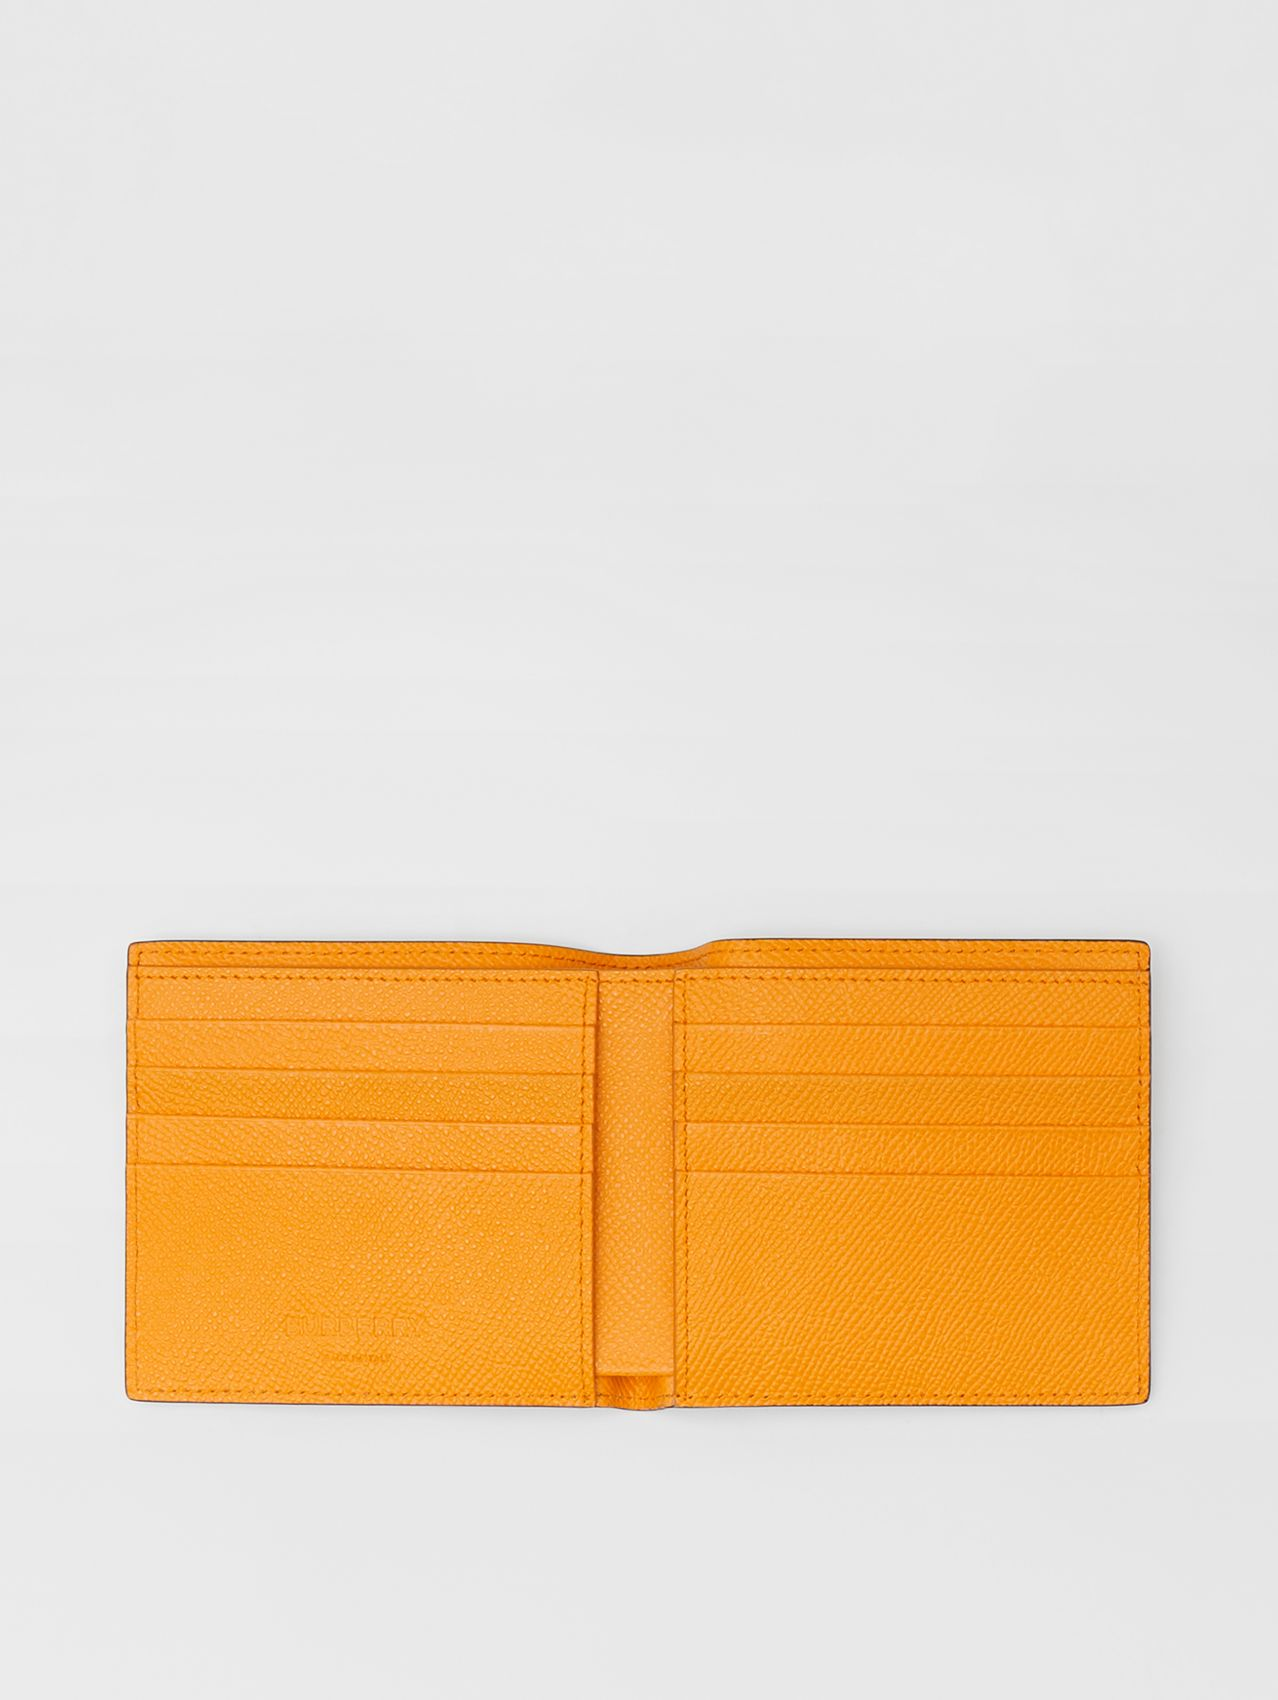 Leather International Bifold Wallet in Bright Orange